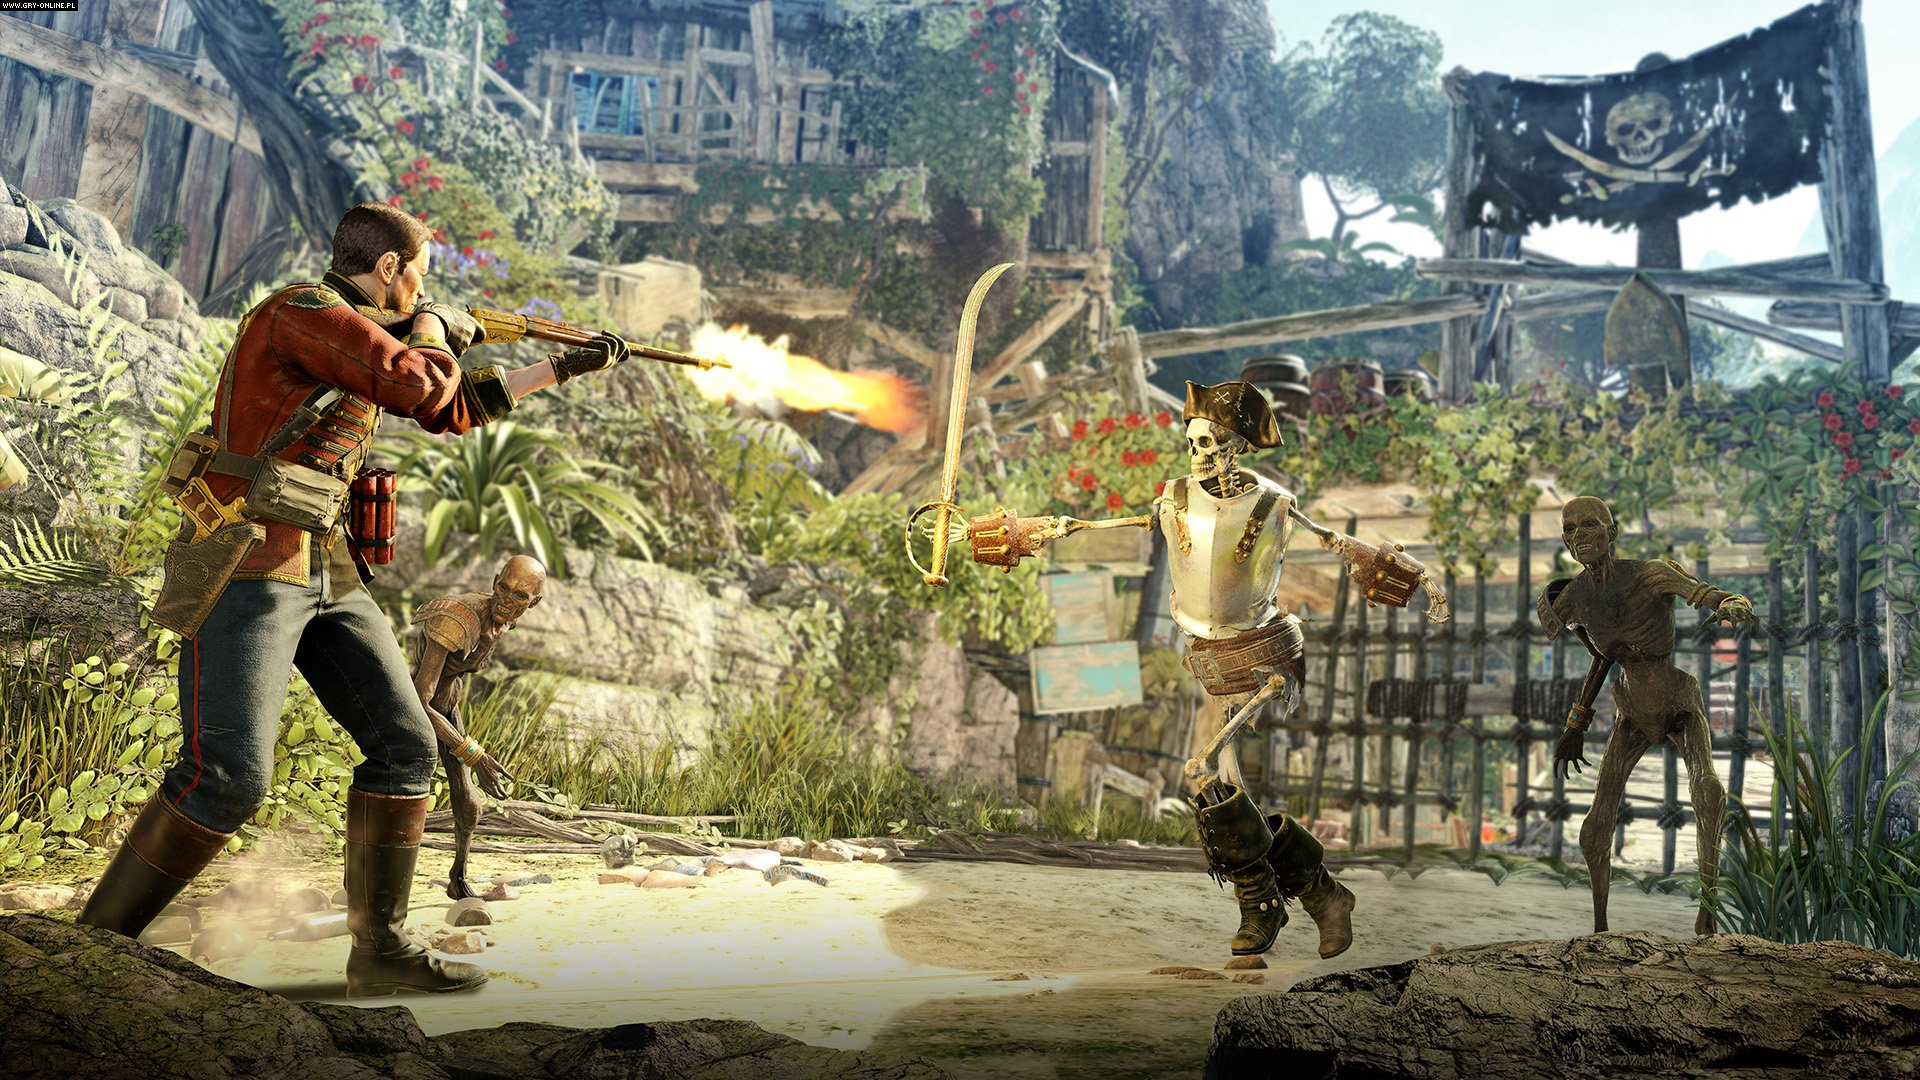 Strange Brigade PC, PS4, XONE Games Image 13/28, Rebellion